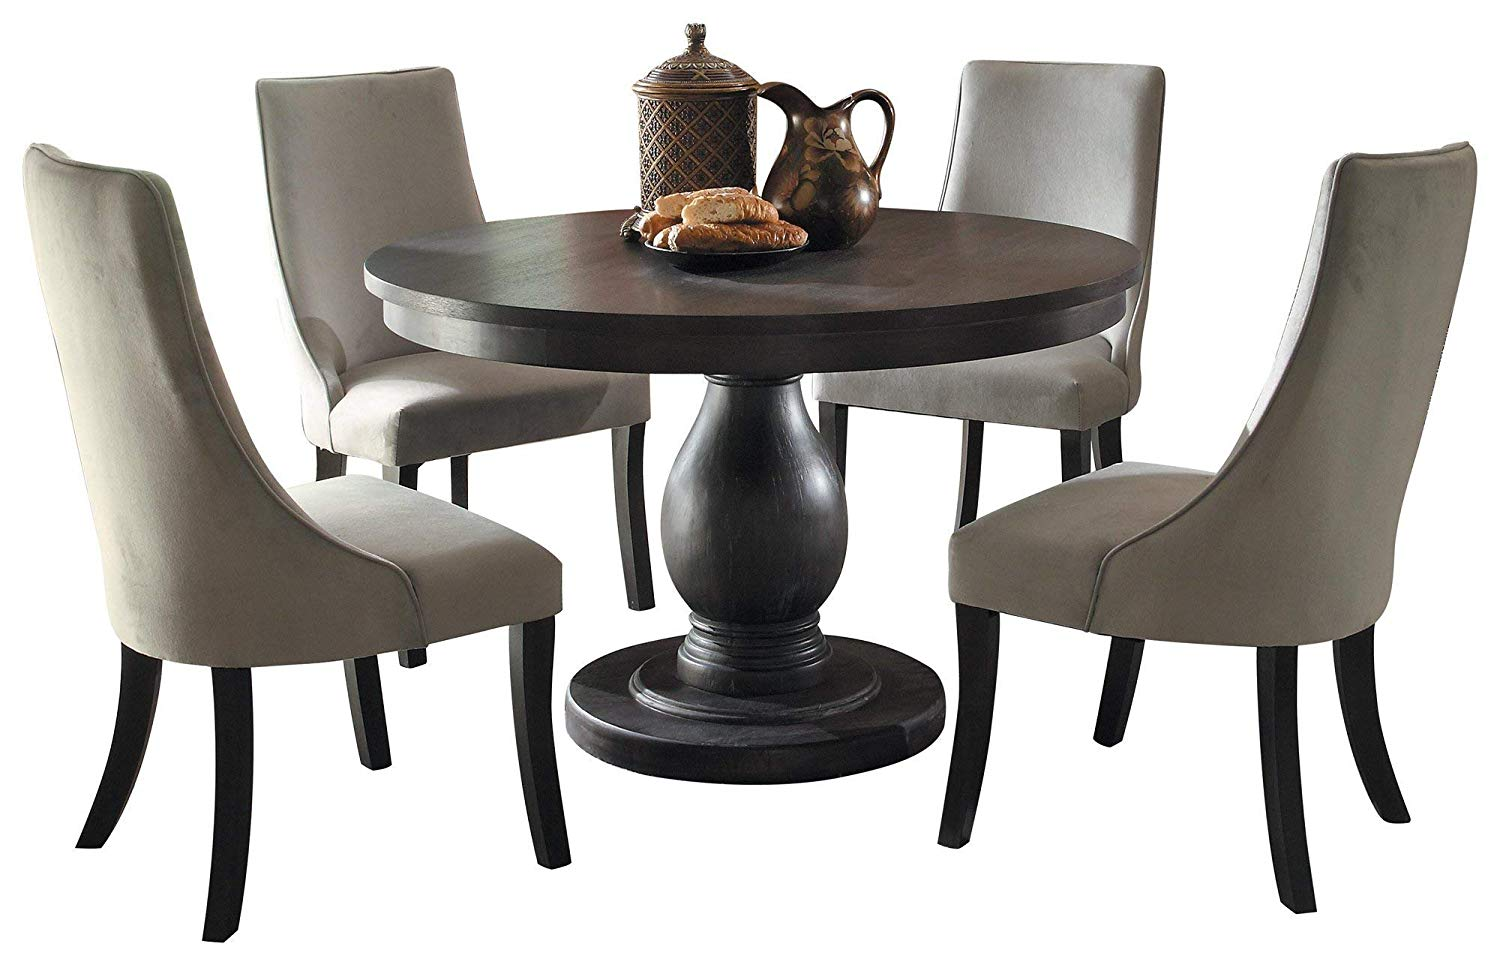 Dakins 5PC Dining Set Round Table & 4 Chair in Rustic Brown